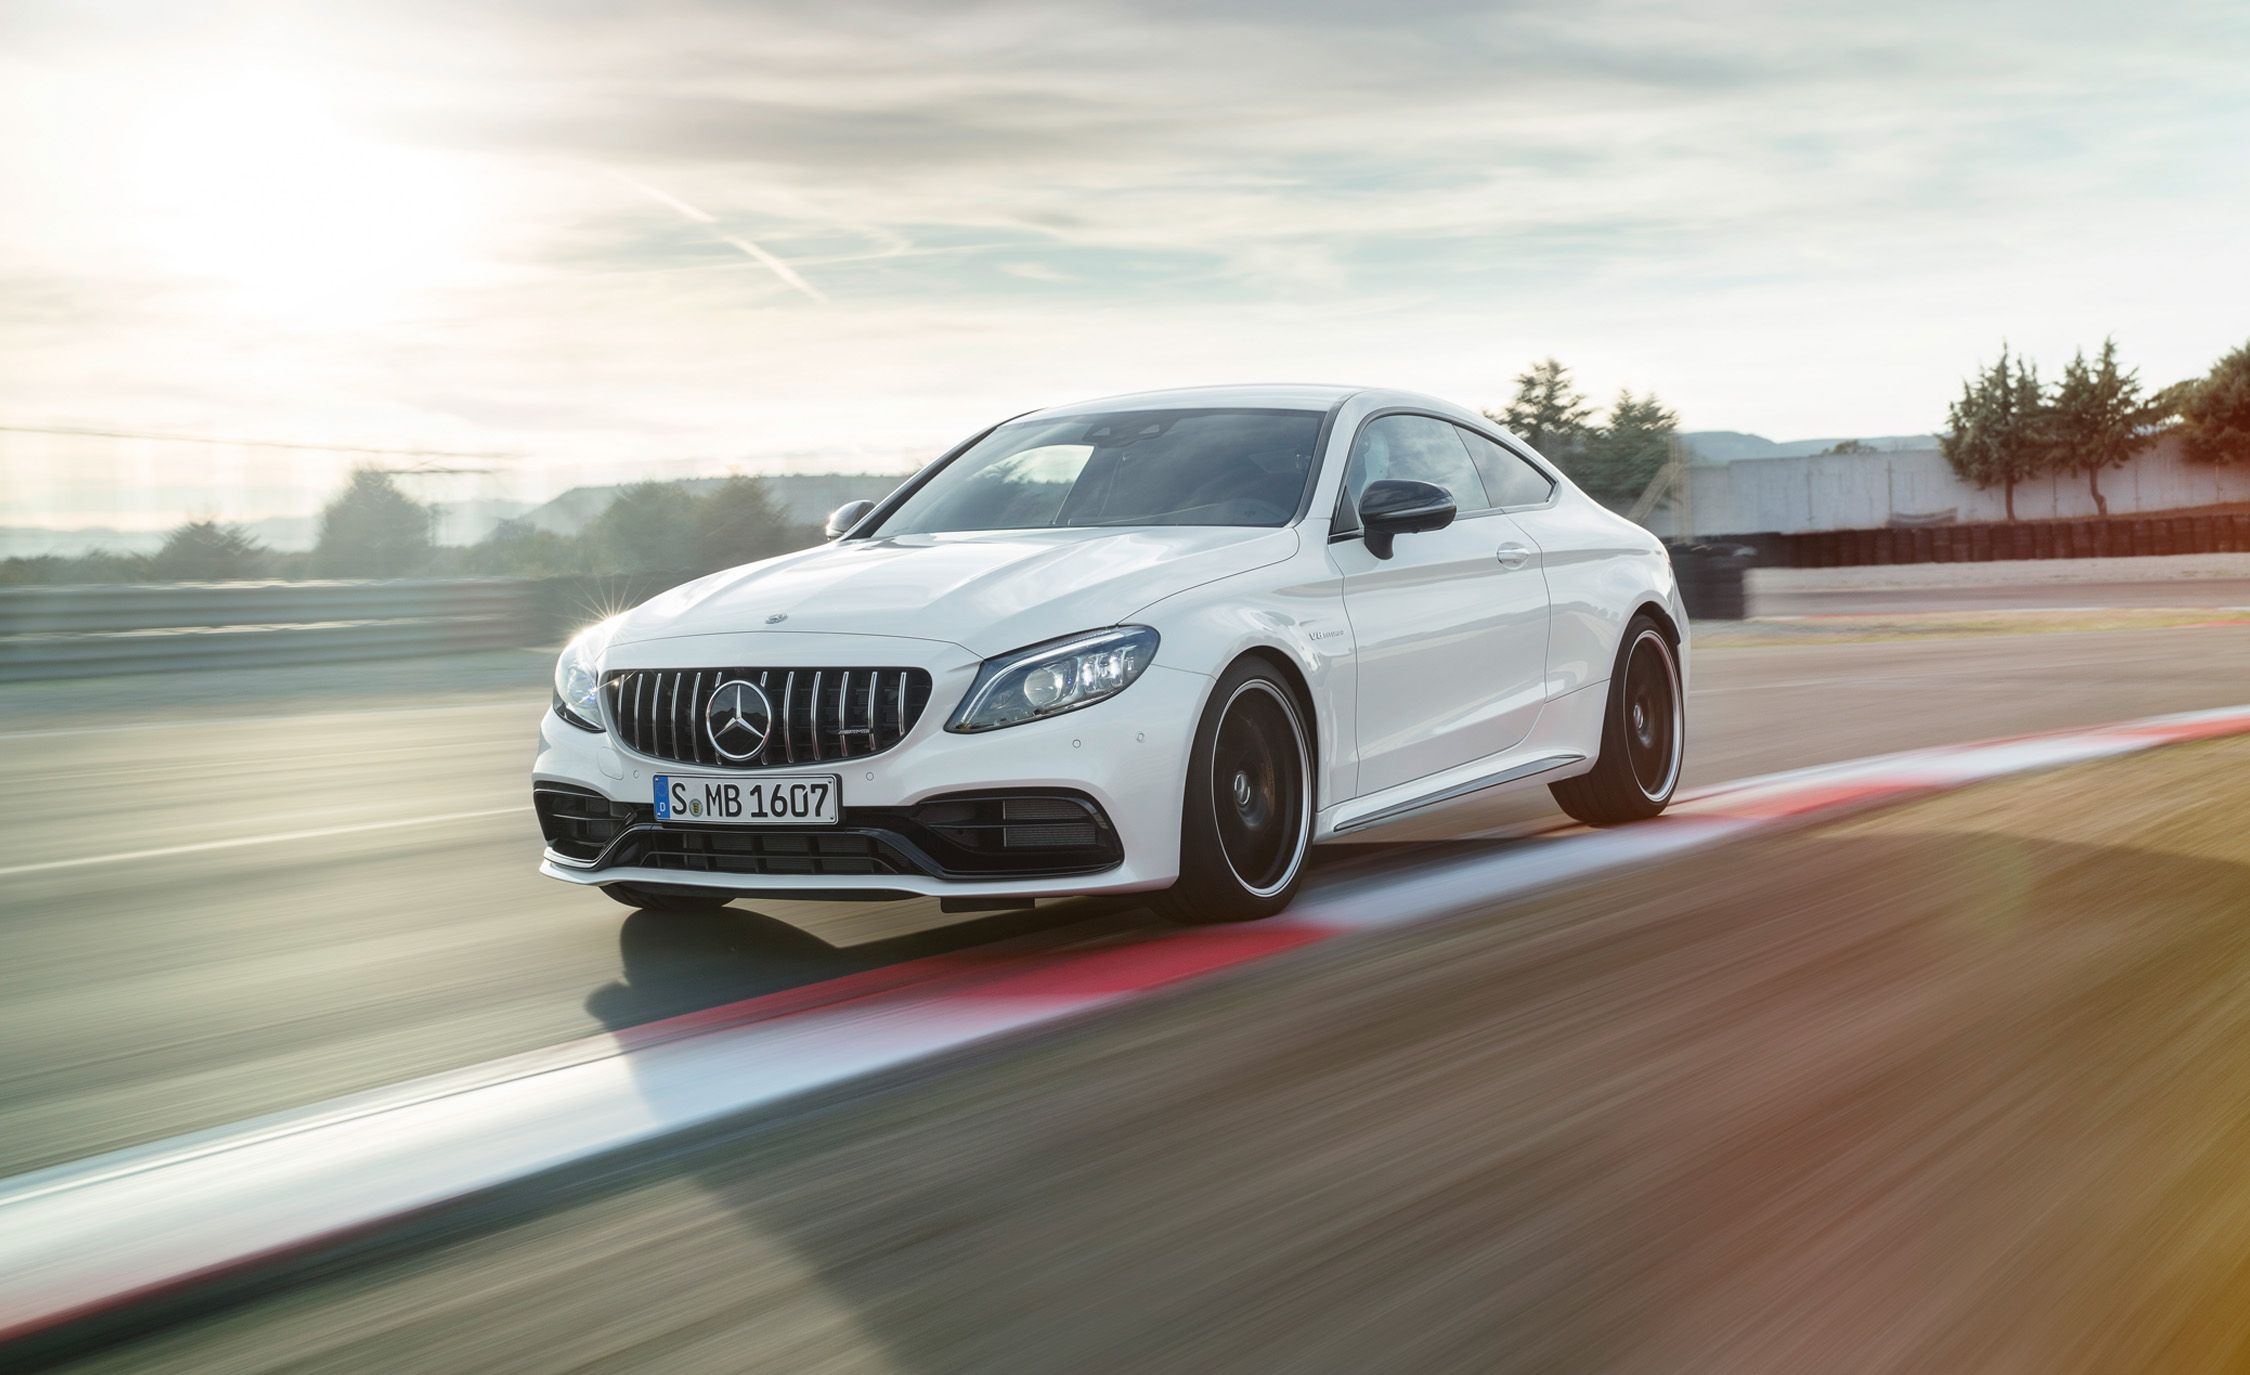 Mercedes Amg 2019 Mercedes Amg C63 Sedan Coupe And Cabriolet Photos And Info